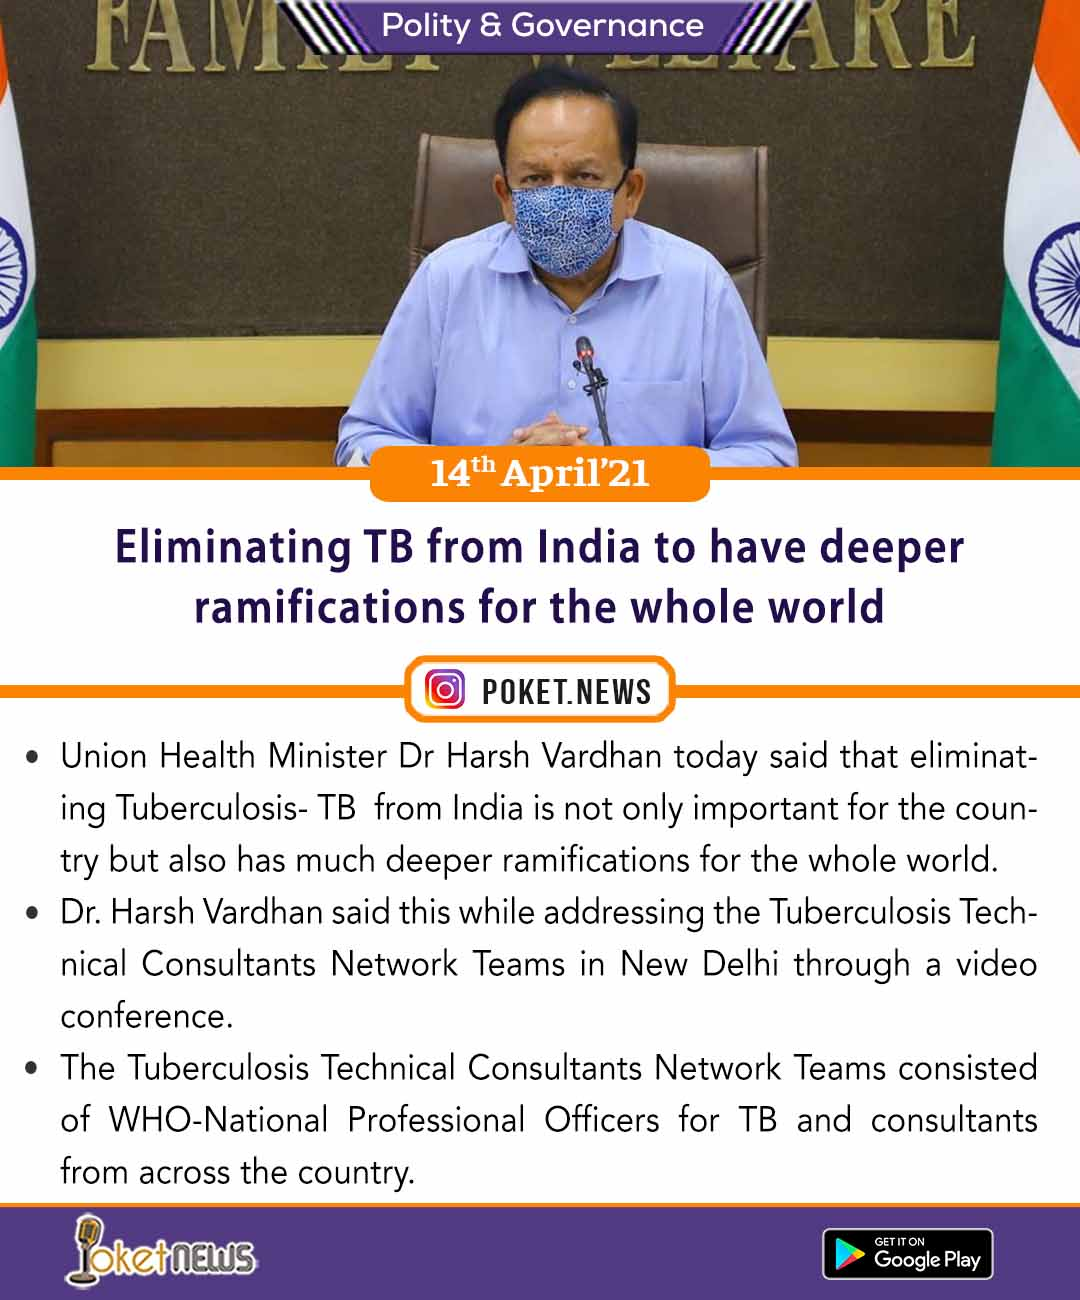 Eliminating TB from India to have deeper ramifications for the whole world